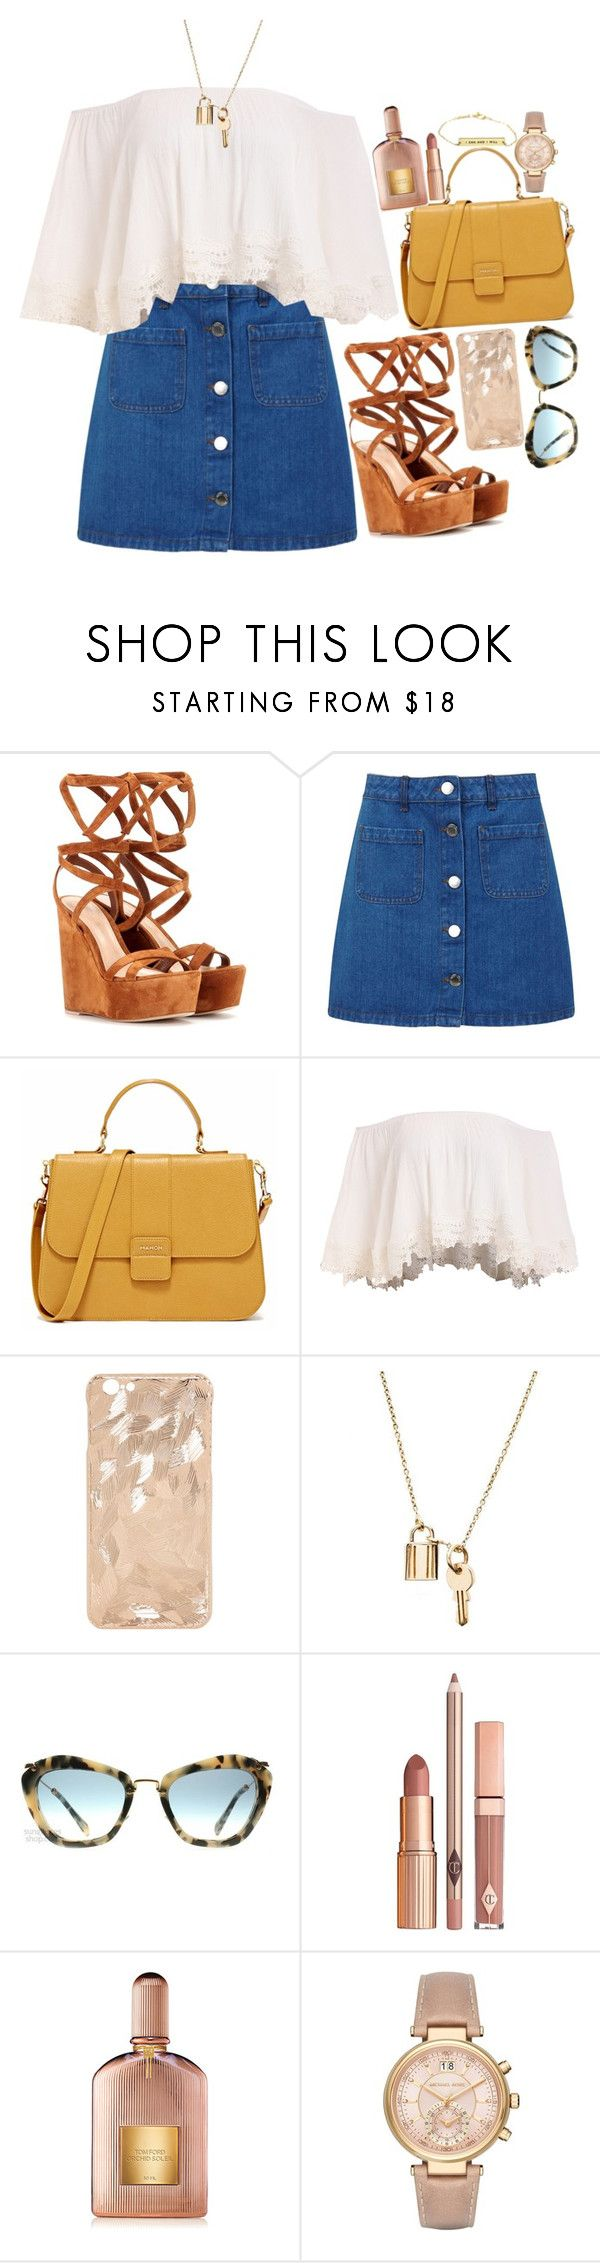 """""""Untitled #813"""" by polinachaban ❤ liked on Polyvore featuring Gianvito Rossi, Miss Selfridge, Miu Miu, Dolce Vita, Tom Ford and Michael Kors"""